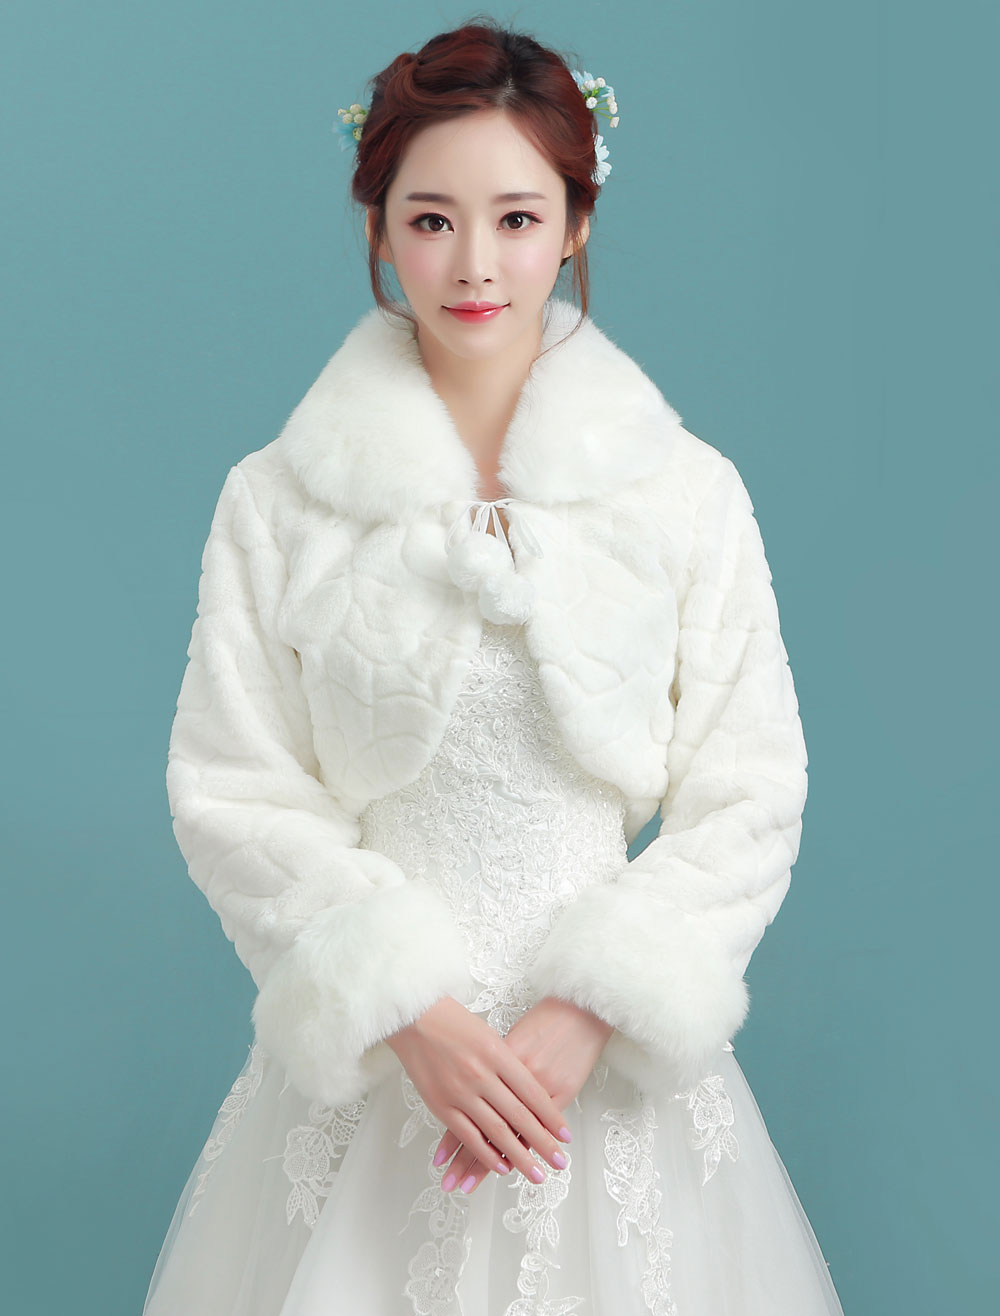 Buy Wedding Bolero Jacket Ivory Turndown Collar Long Sleeve Bridal Winter Faux Fur Stole With Pom Poms for $18.89 in Milanoo store